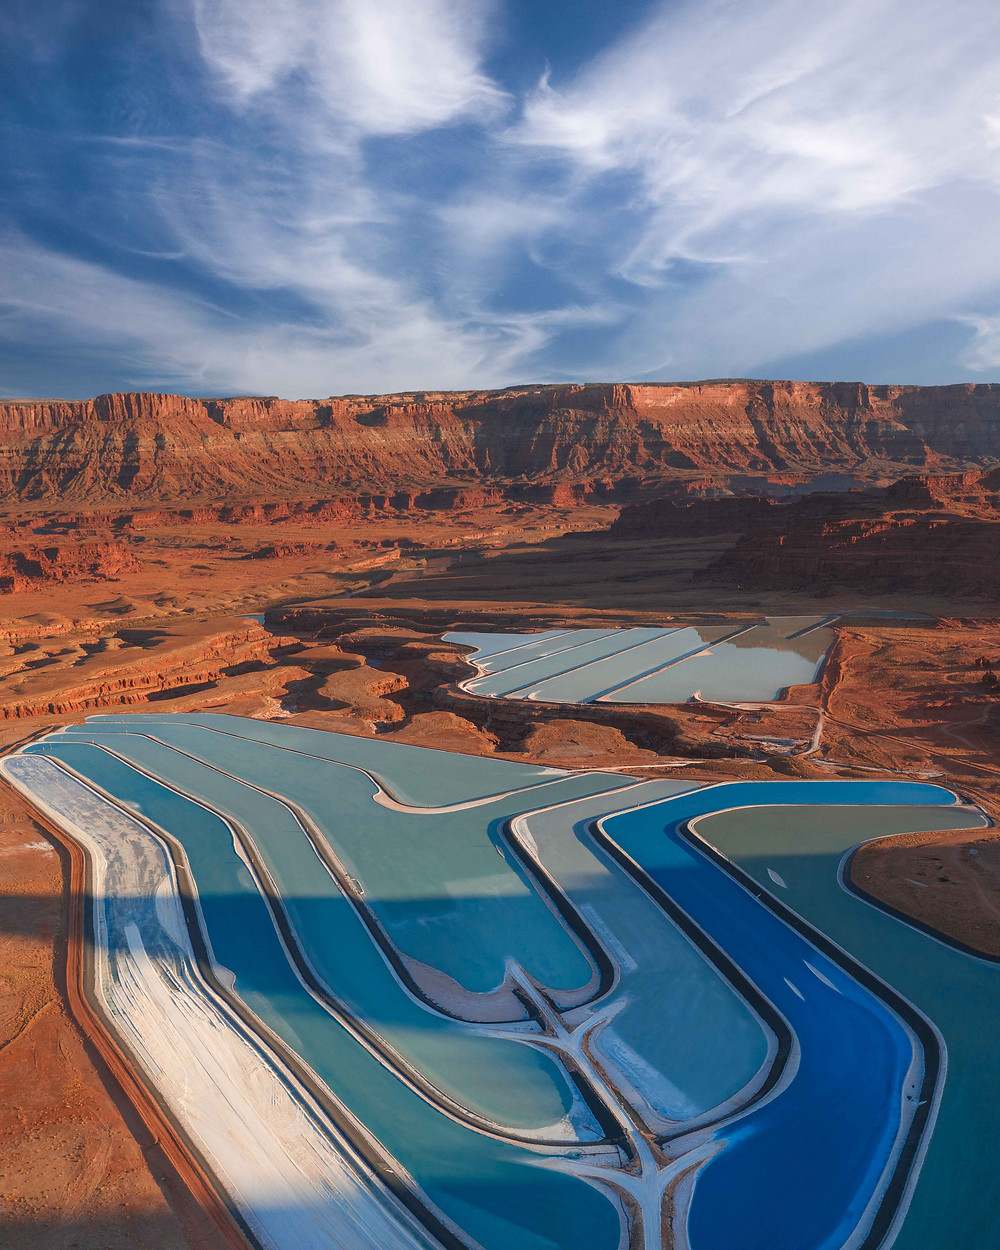 vibrant blue and white salt ponds on the canyon floor of the surrounding red rock mountains